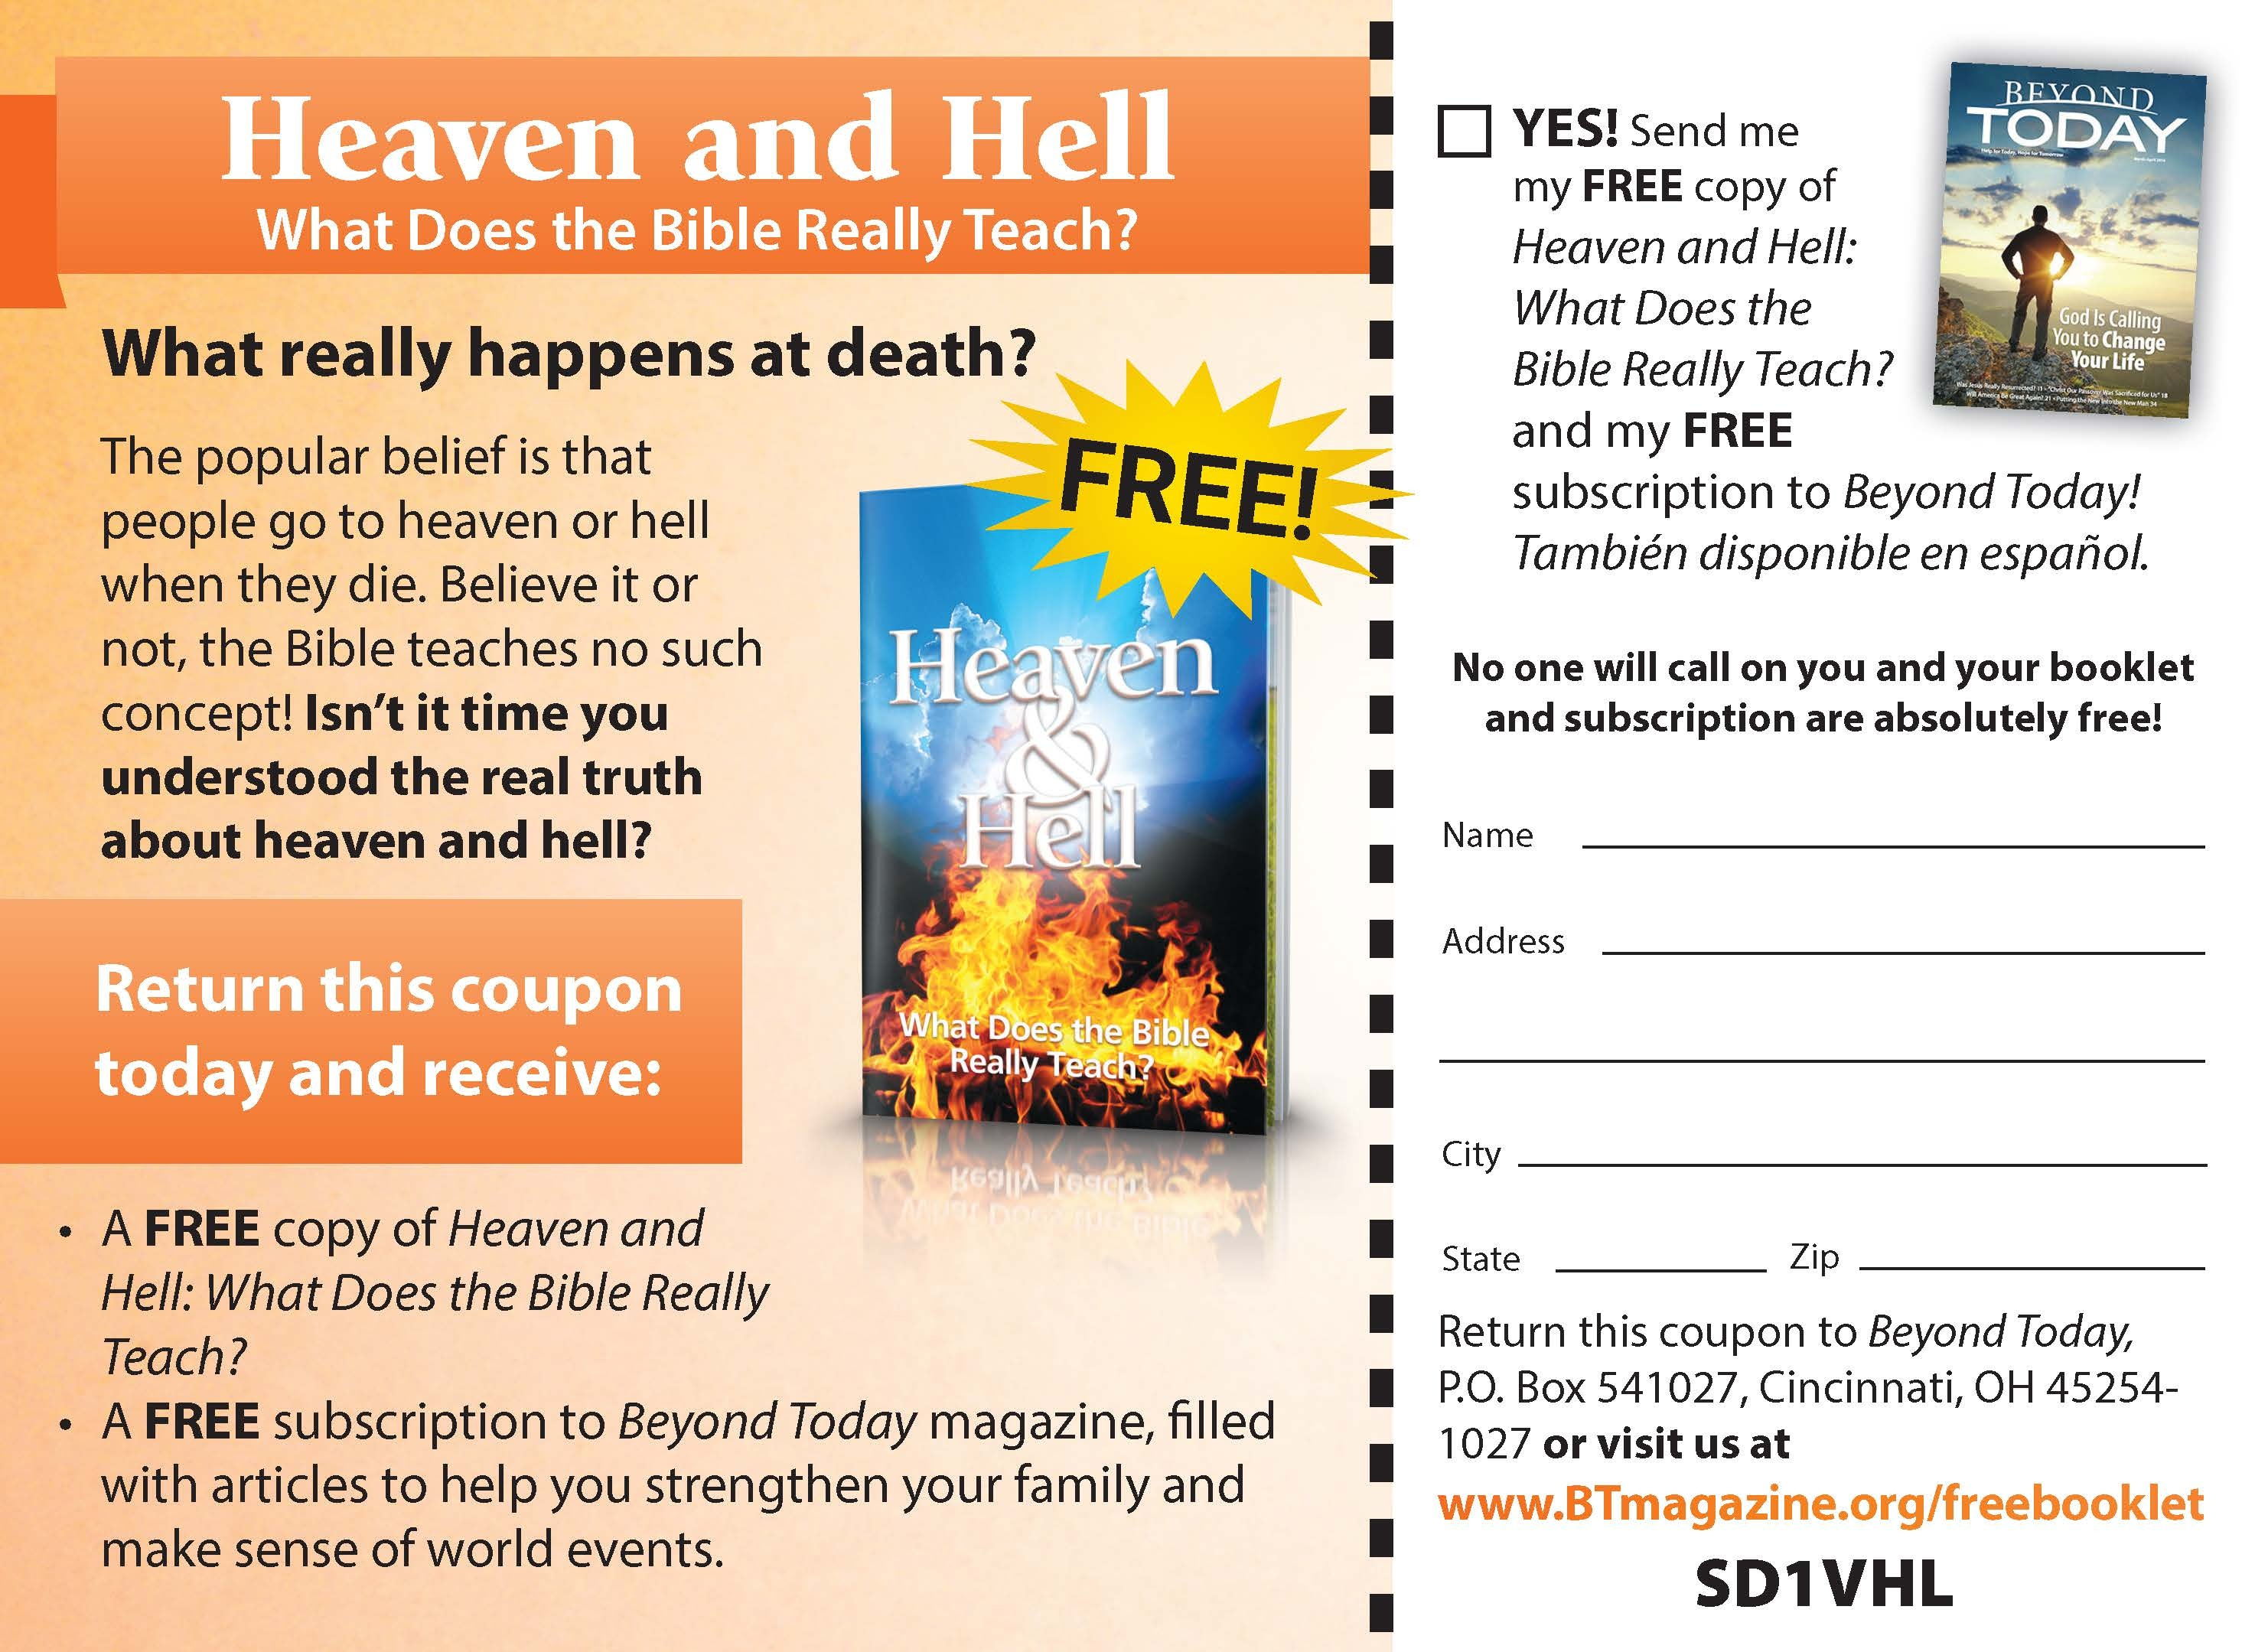 This is a copy of the UCG booklet card ad for Heaven and Hell